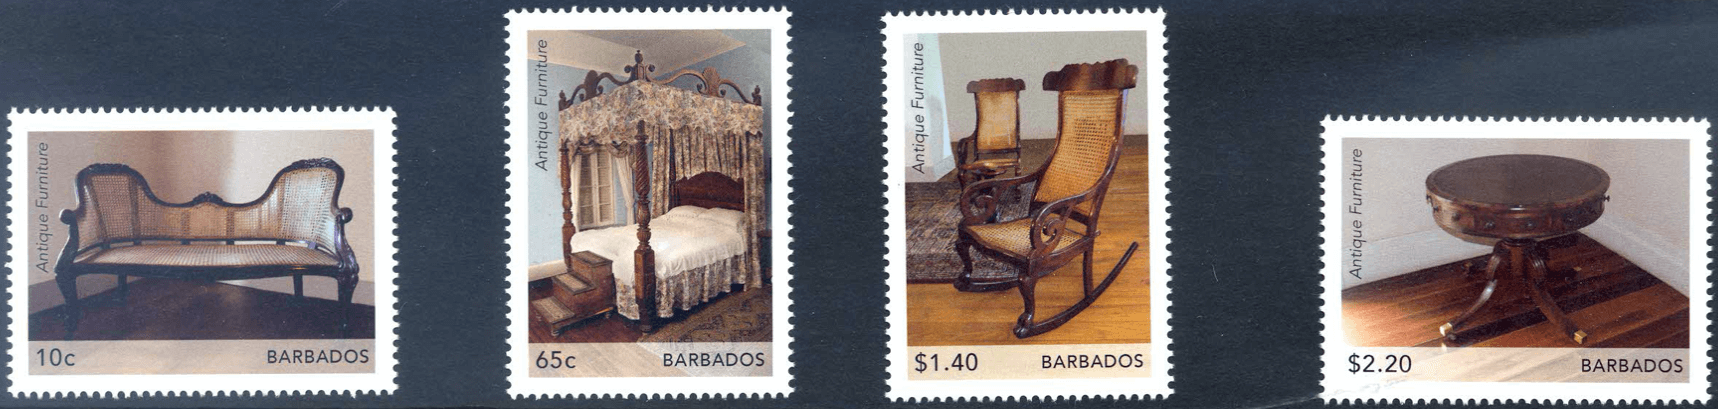 Barbados issues new stamp set celebrating Antique Barbados Furniture